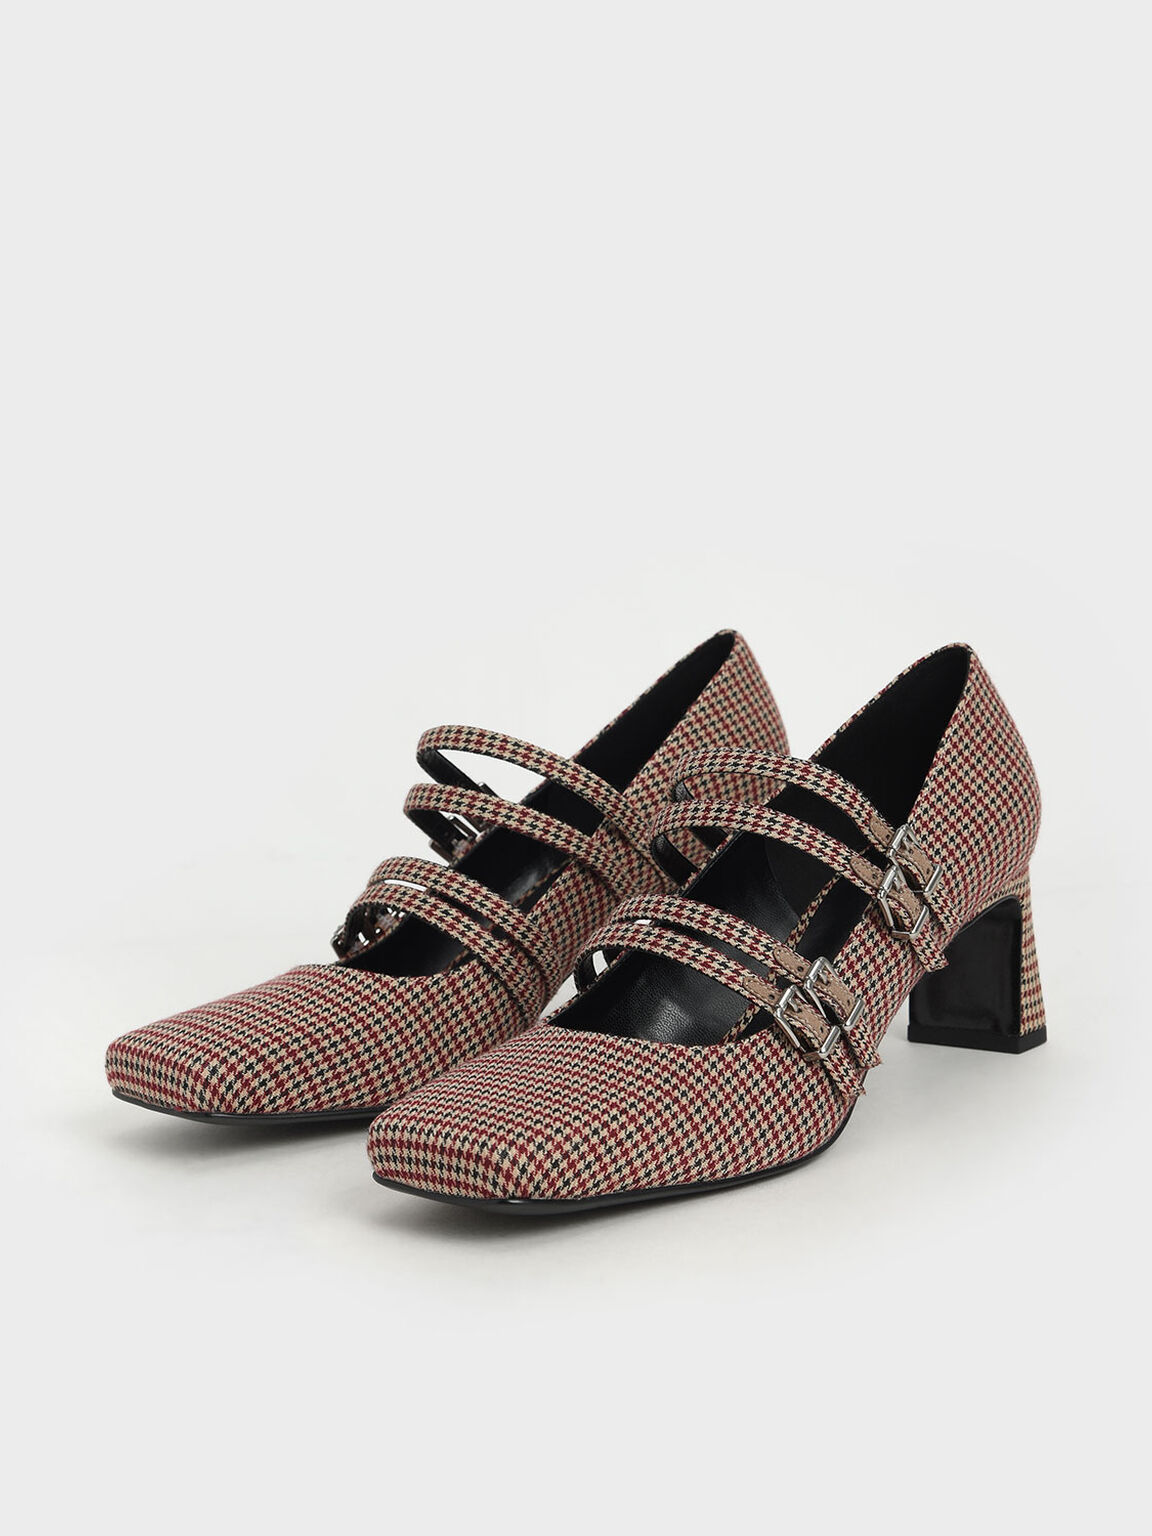 Houndstooth Print Buckled Blade Heel Mary Janes, Multi, hi-res